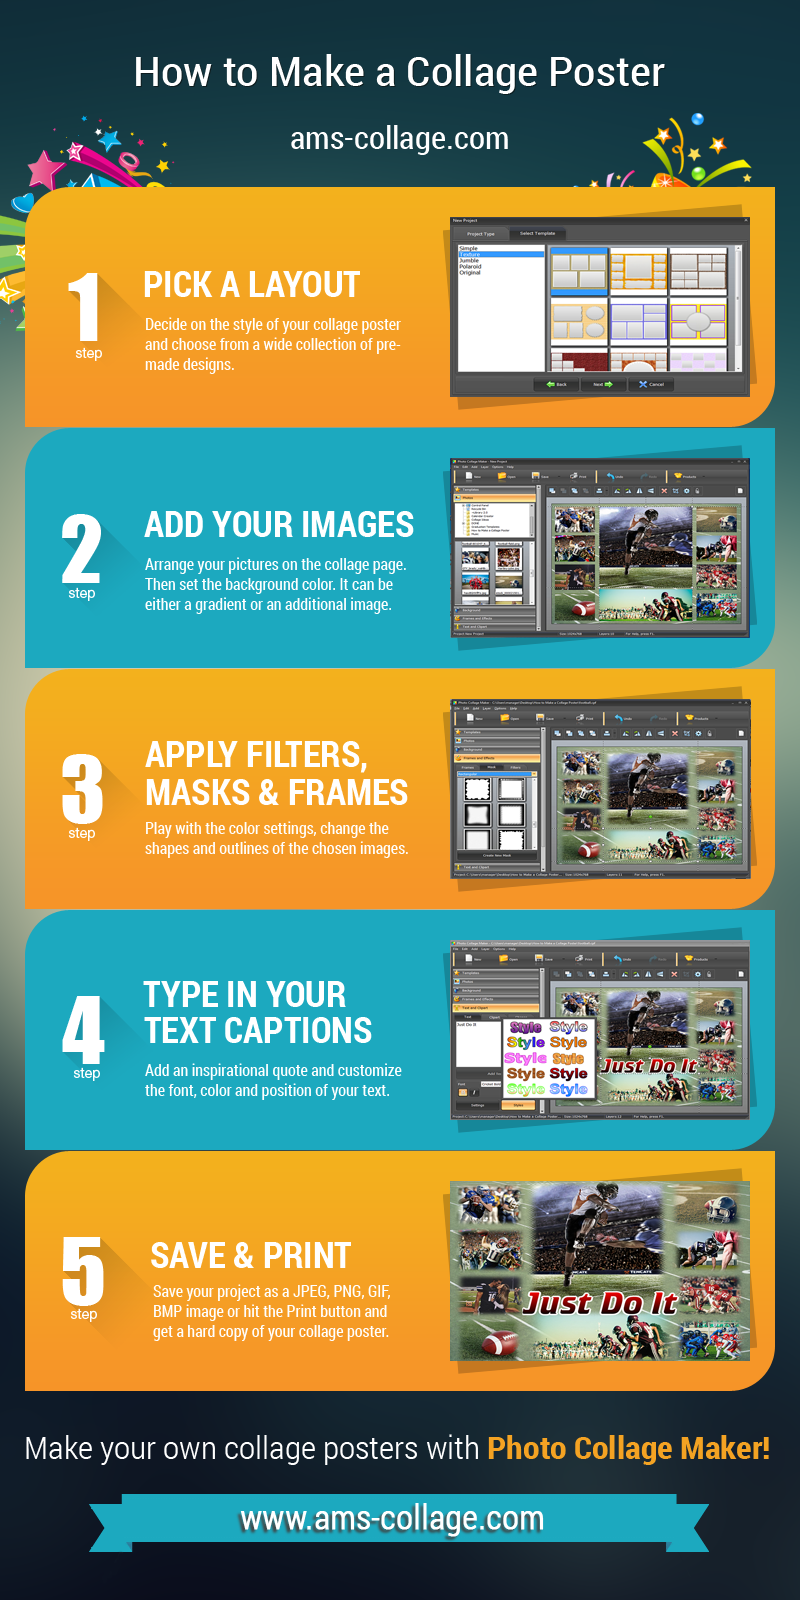 Home Design App Tips And Tricks 28 Images Home Design App Hacks 28 Images Home Design